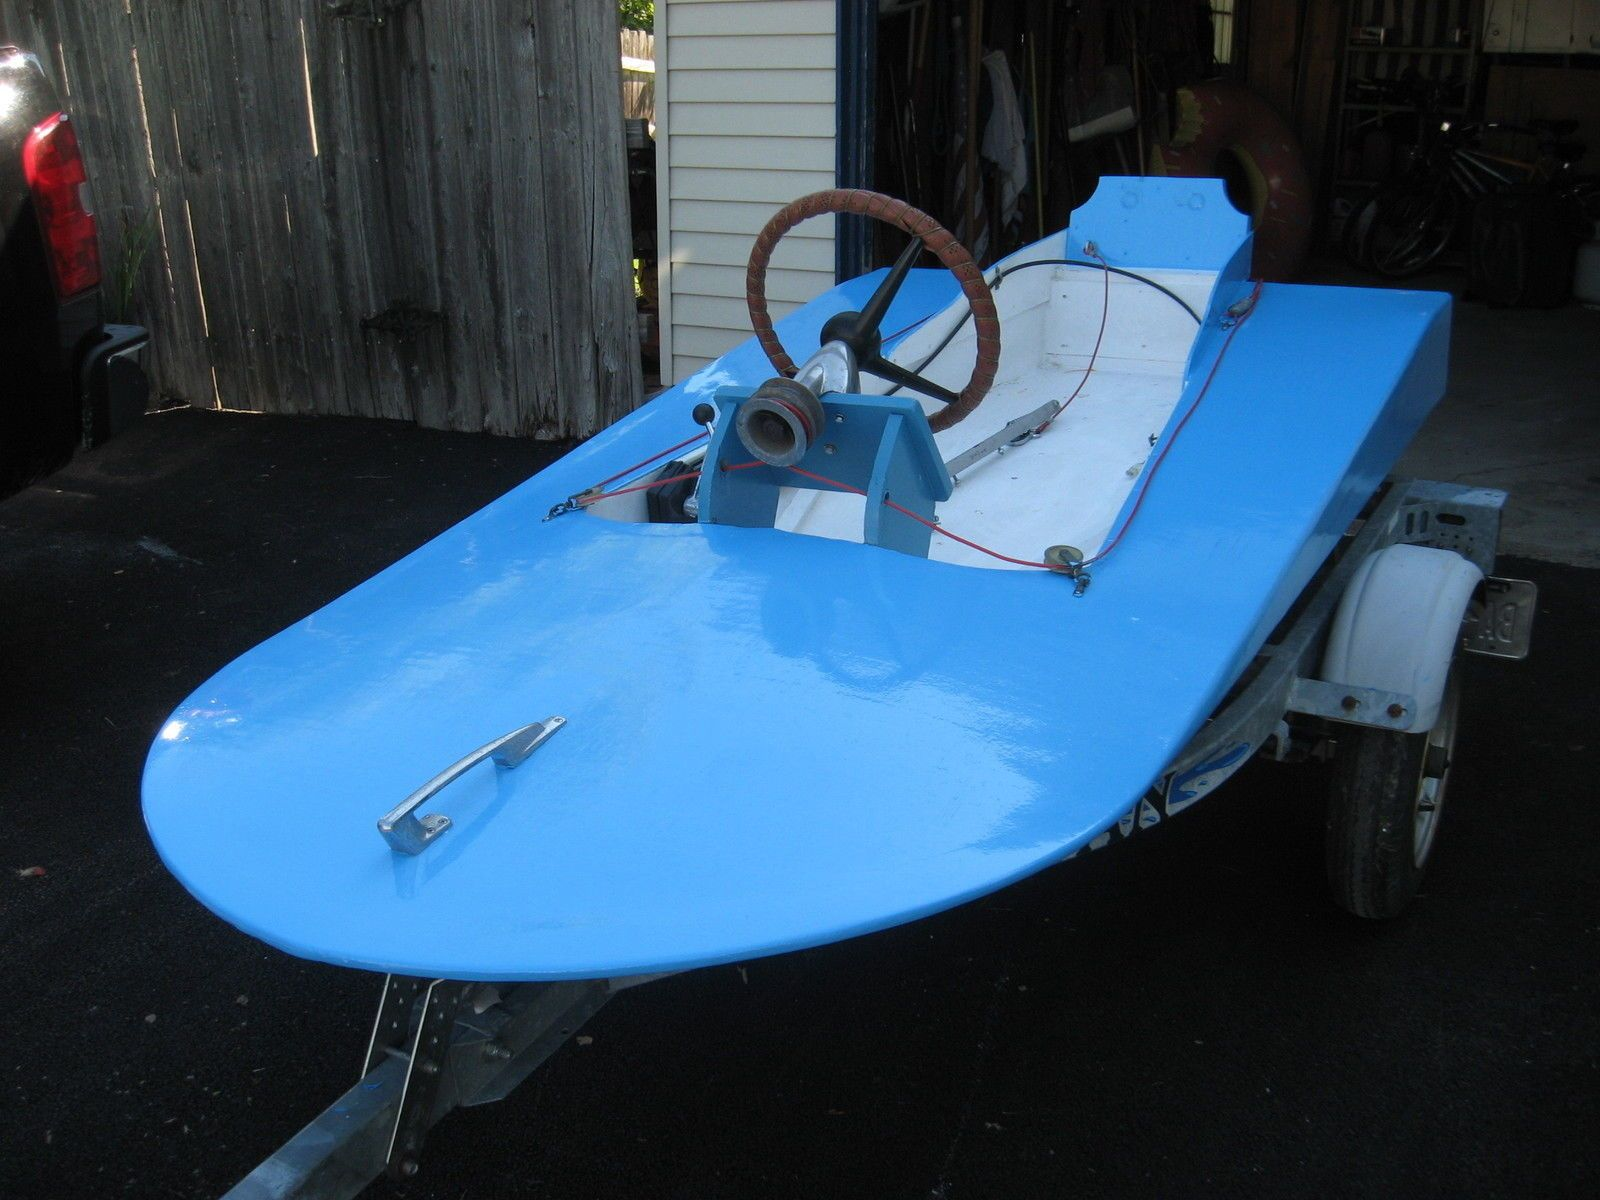 Home Built Mini Max Hydroplane 2010 For Sale For 350 Boats From Usa Com Hydroplane Hydroplane Boats Classic Wooden Boats